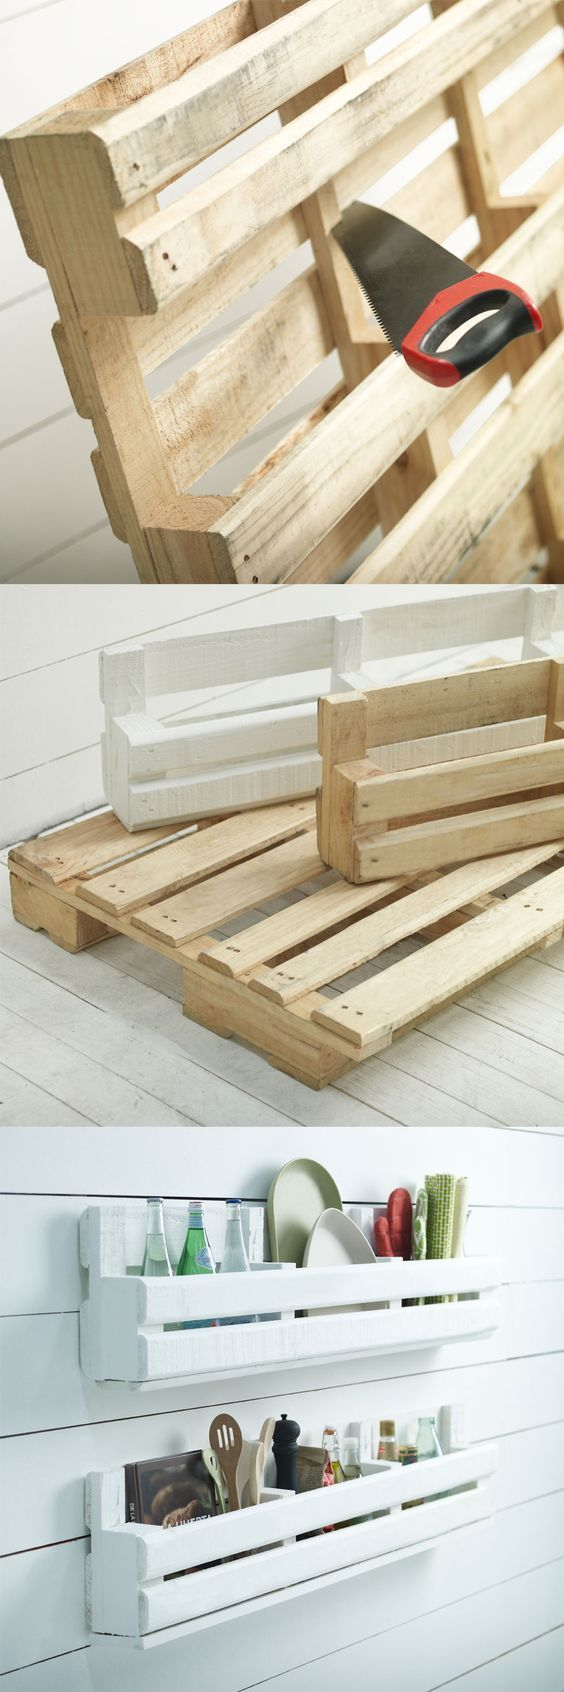 best images about Pallet ideas on Pinterest Outdoor pallet